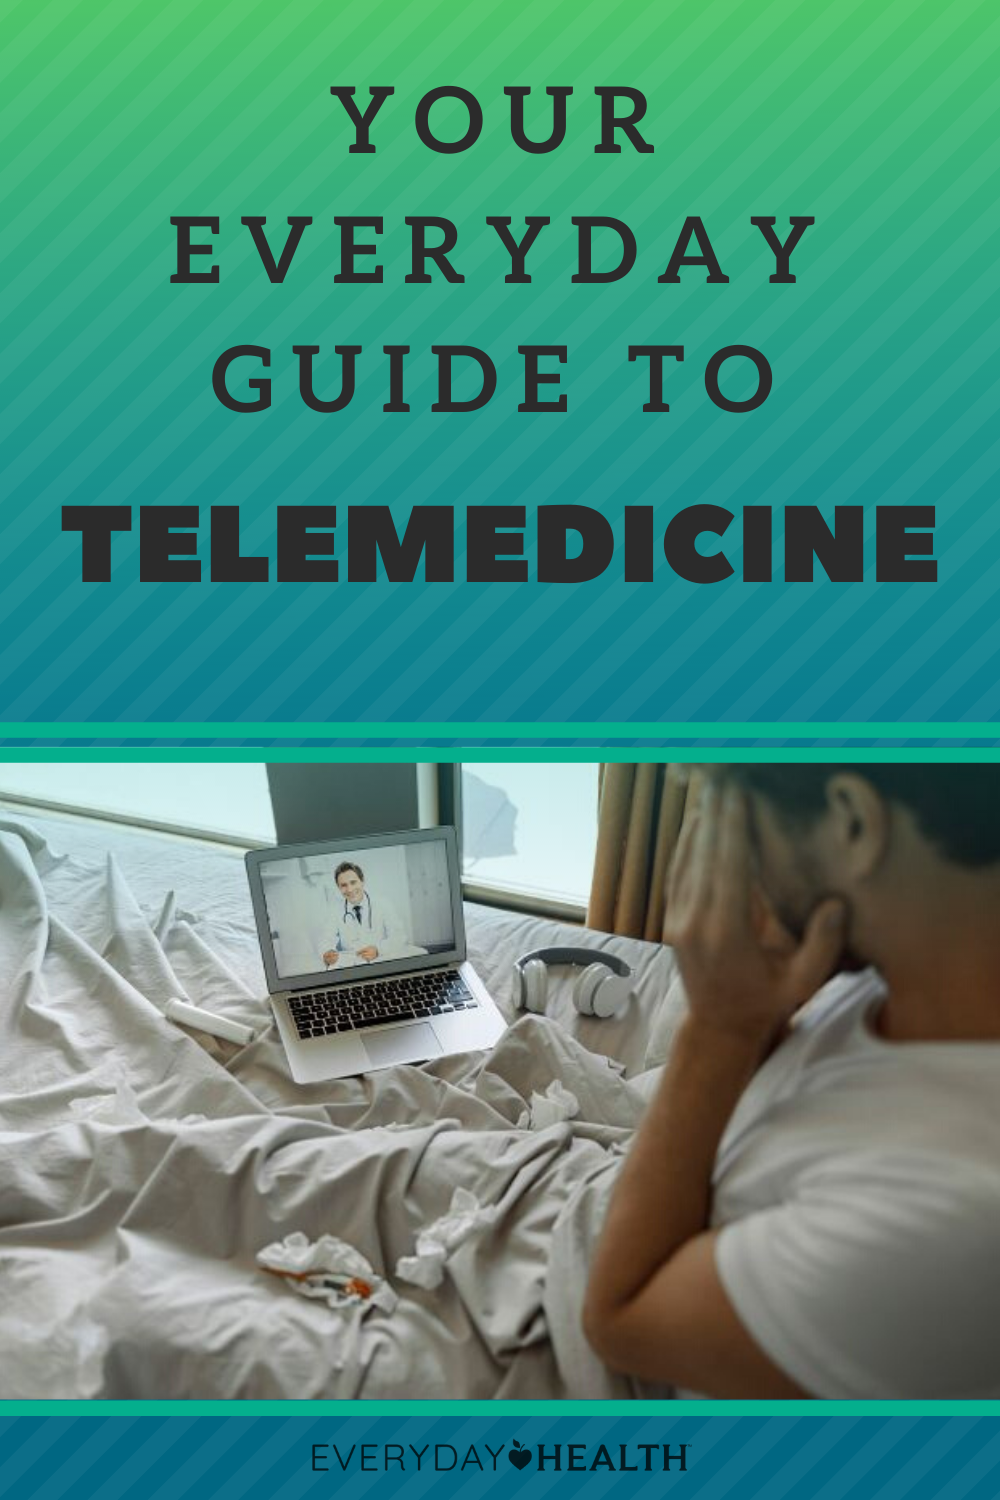 Learn everything you need to know about using telemedicine